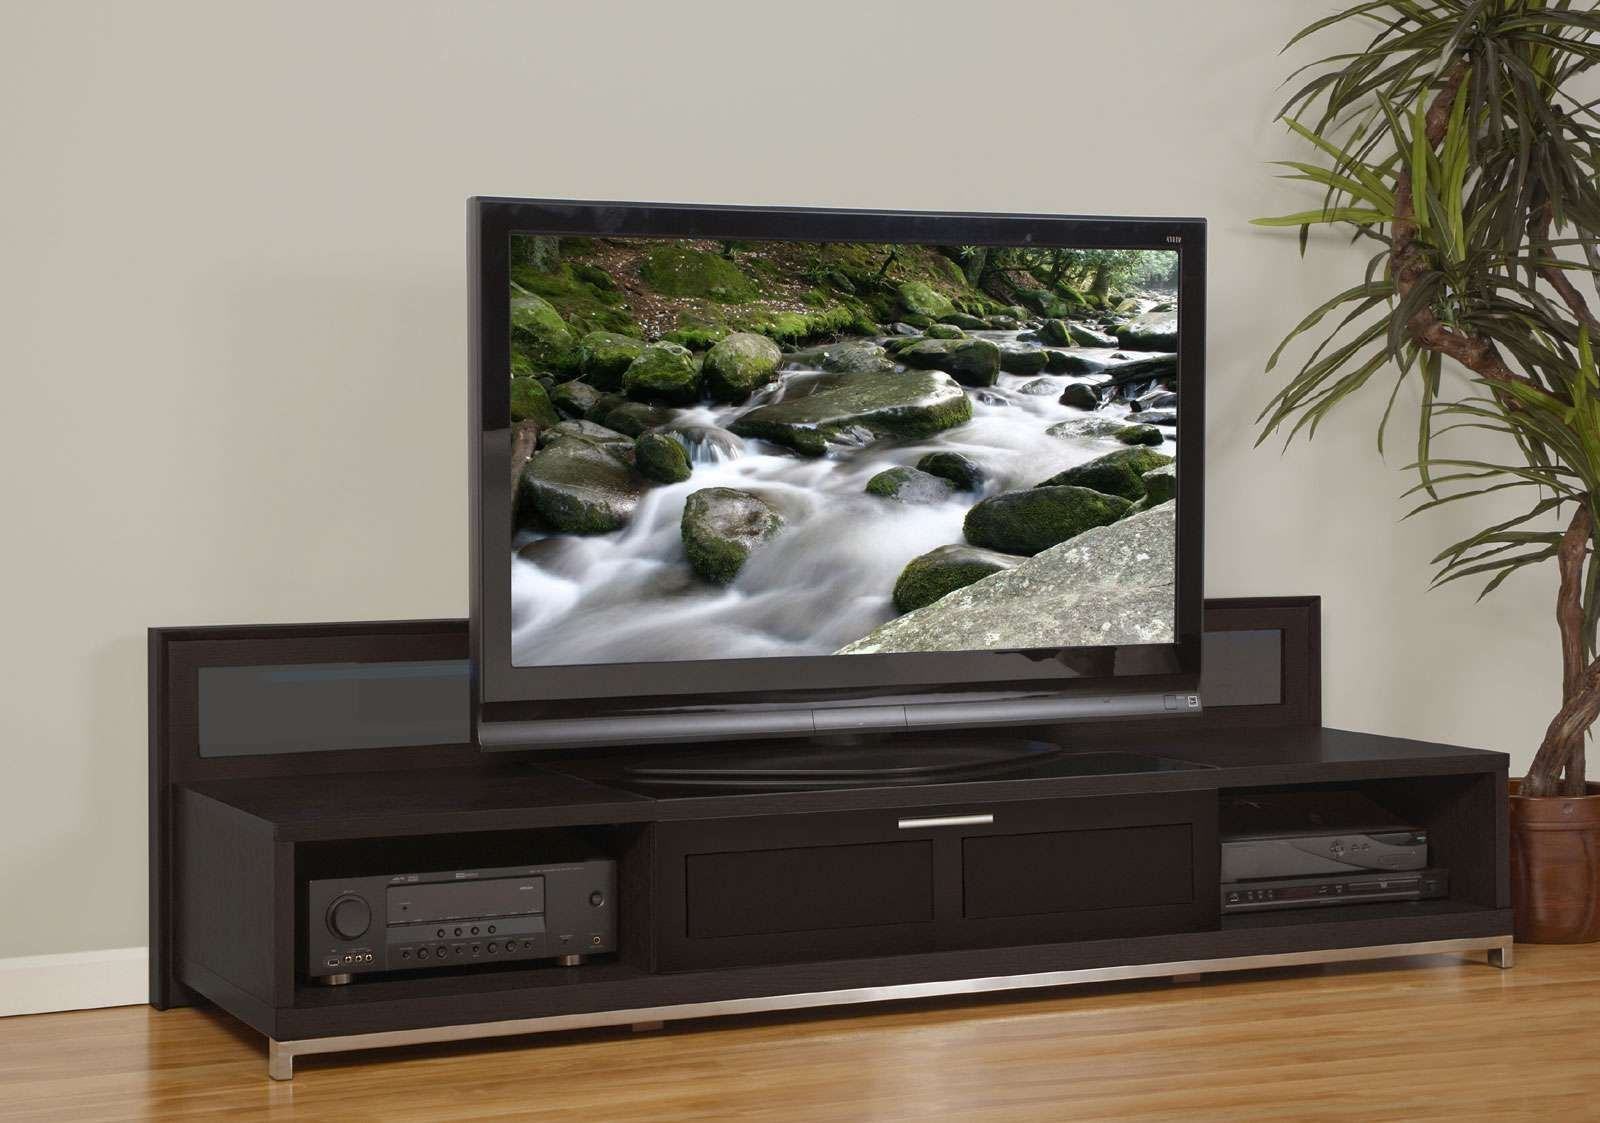 Tv Stands On A Budget Inch Flat Screens Collection Ideas Corner With Regard To Corner Tv Stands For 60 Inch Flat Screens (View 10 of 15)